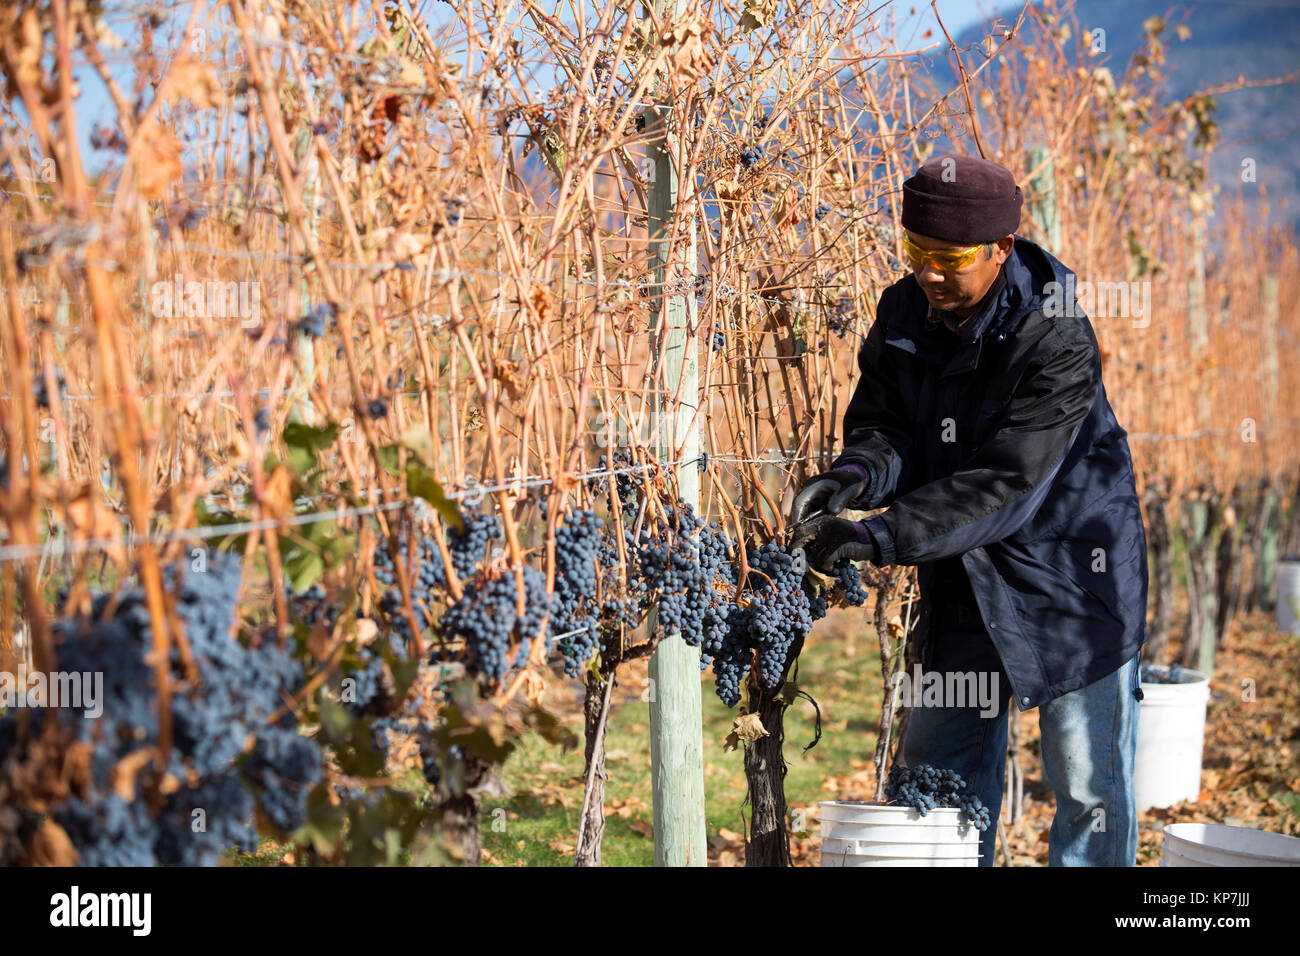 Immigrant farm worker harvesting cabernet franc grapes in the Okanagan Valley, British Columbia, Canada. - Stock Image